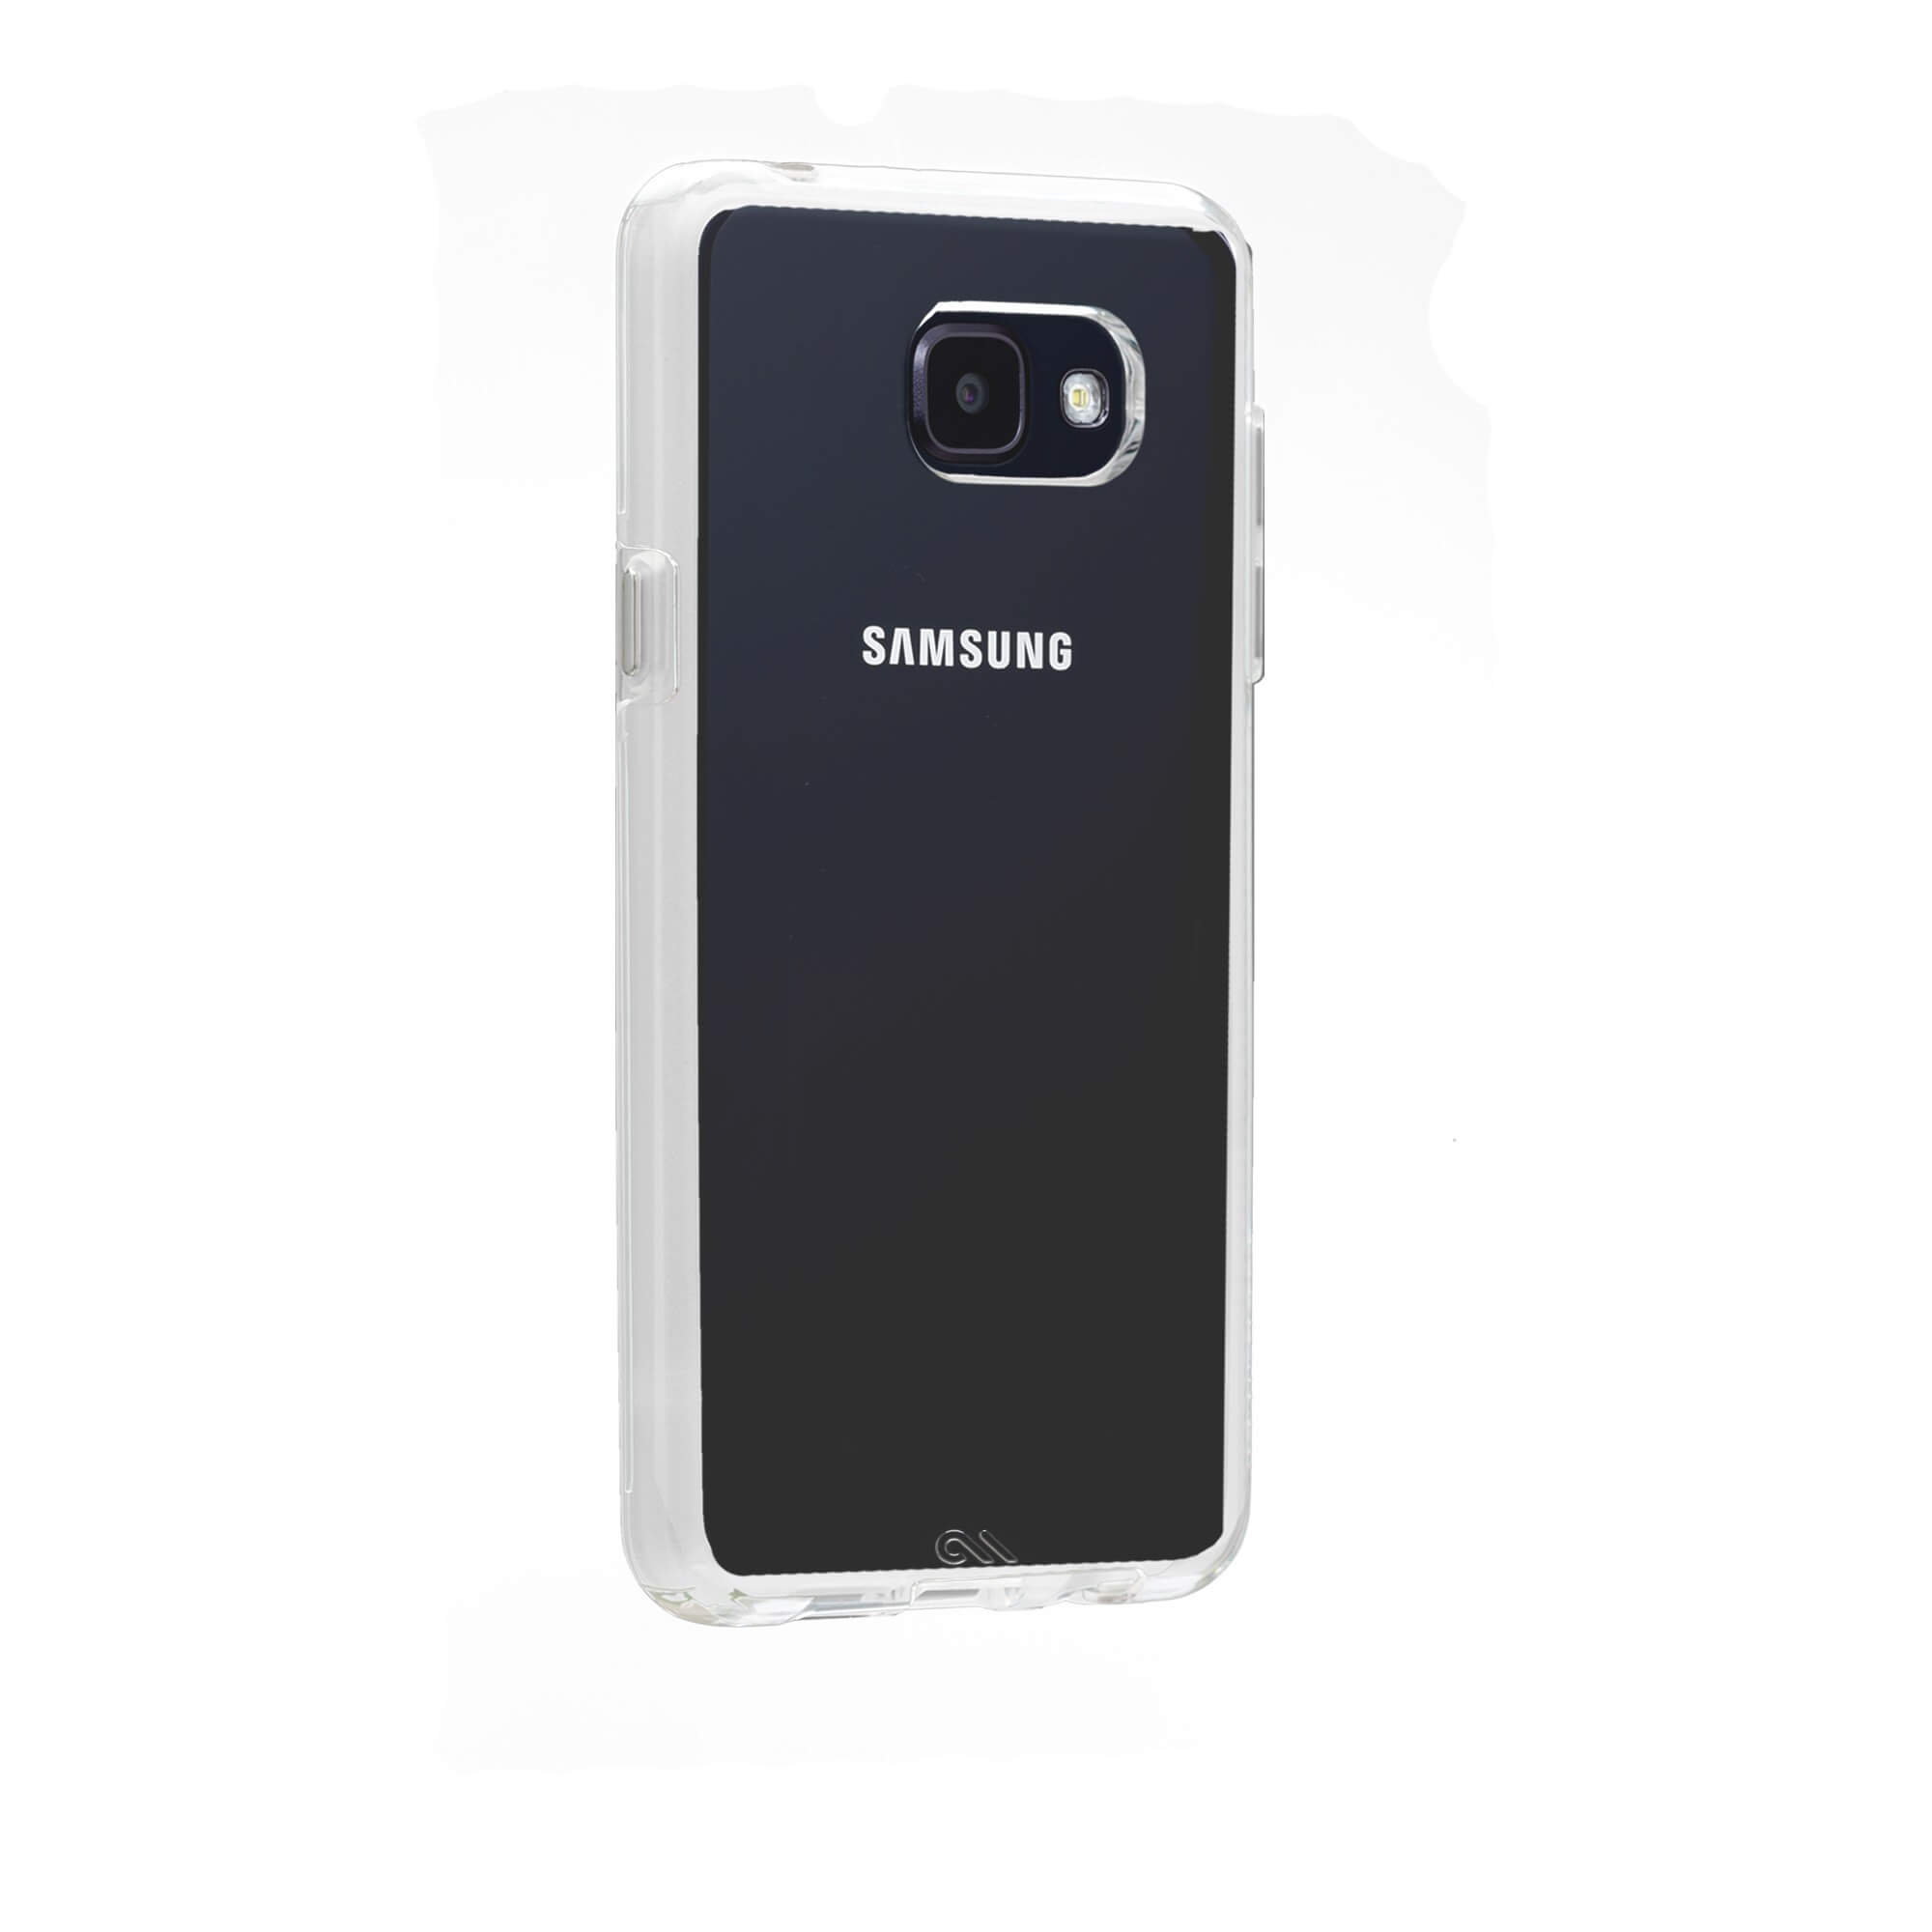 CaseMate Tough Naked Case for Samsung Galaxy A3 (2016) (clear)